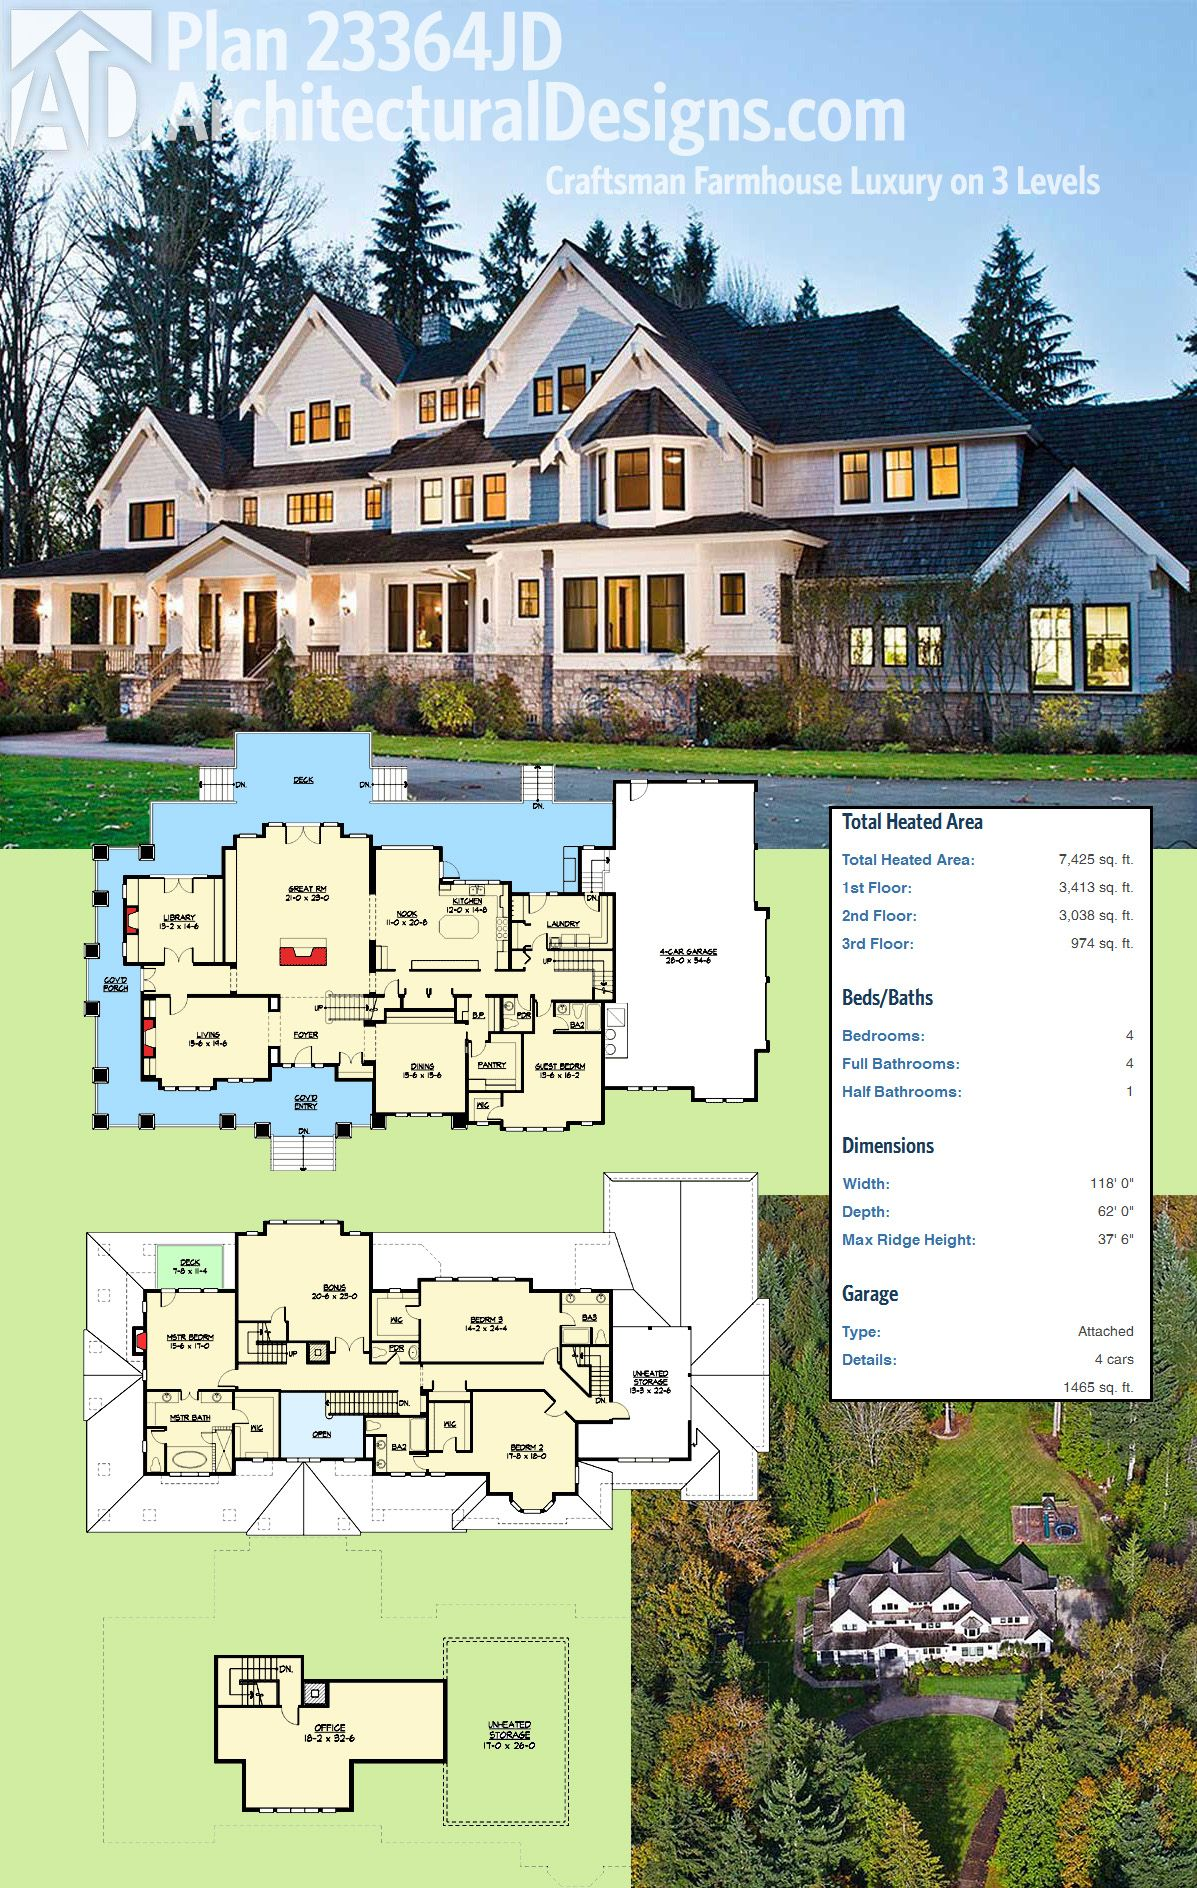 Plan 23364jd luxury on 3 levels craftsman farmhouse for Luxury houses plans